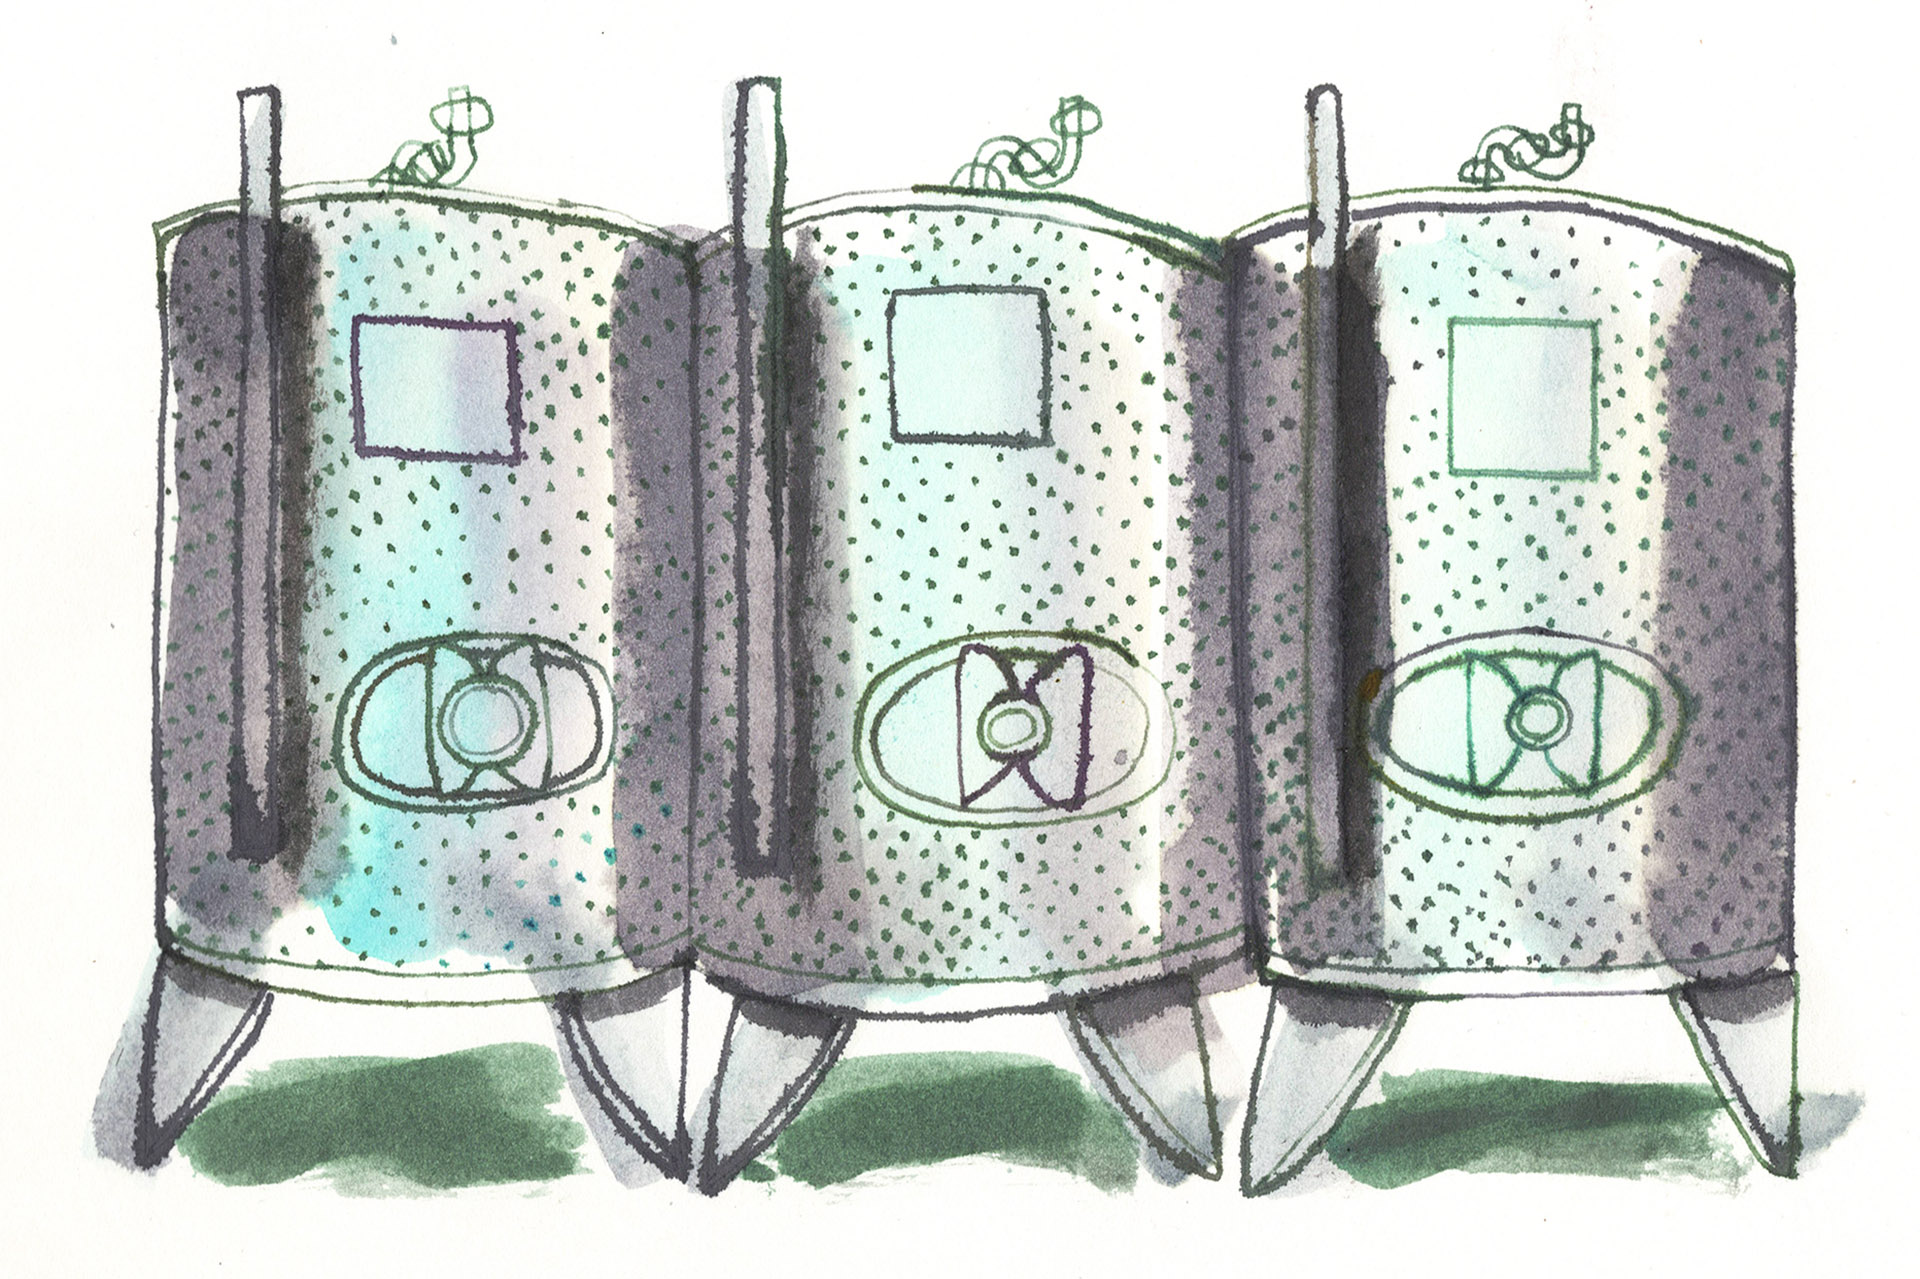 Steel tanks for reductive winemaking illustration